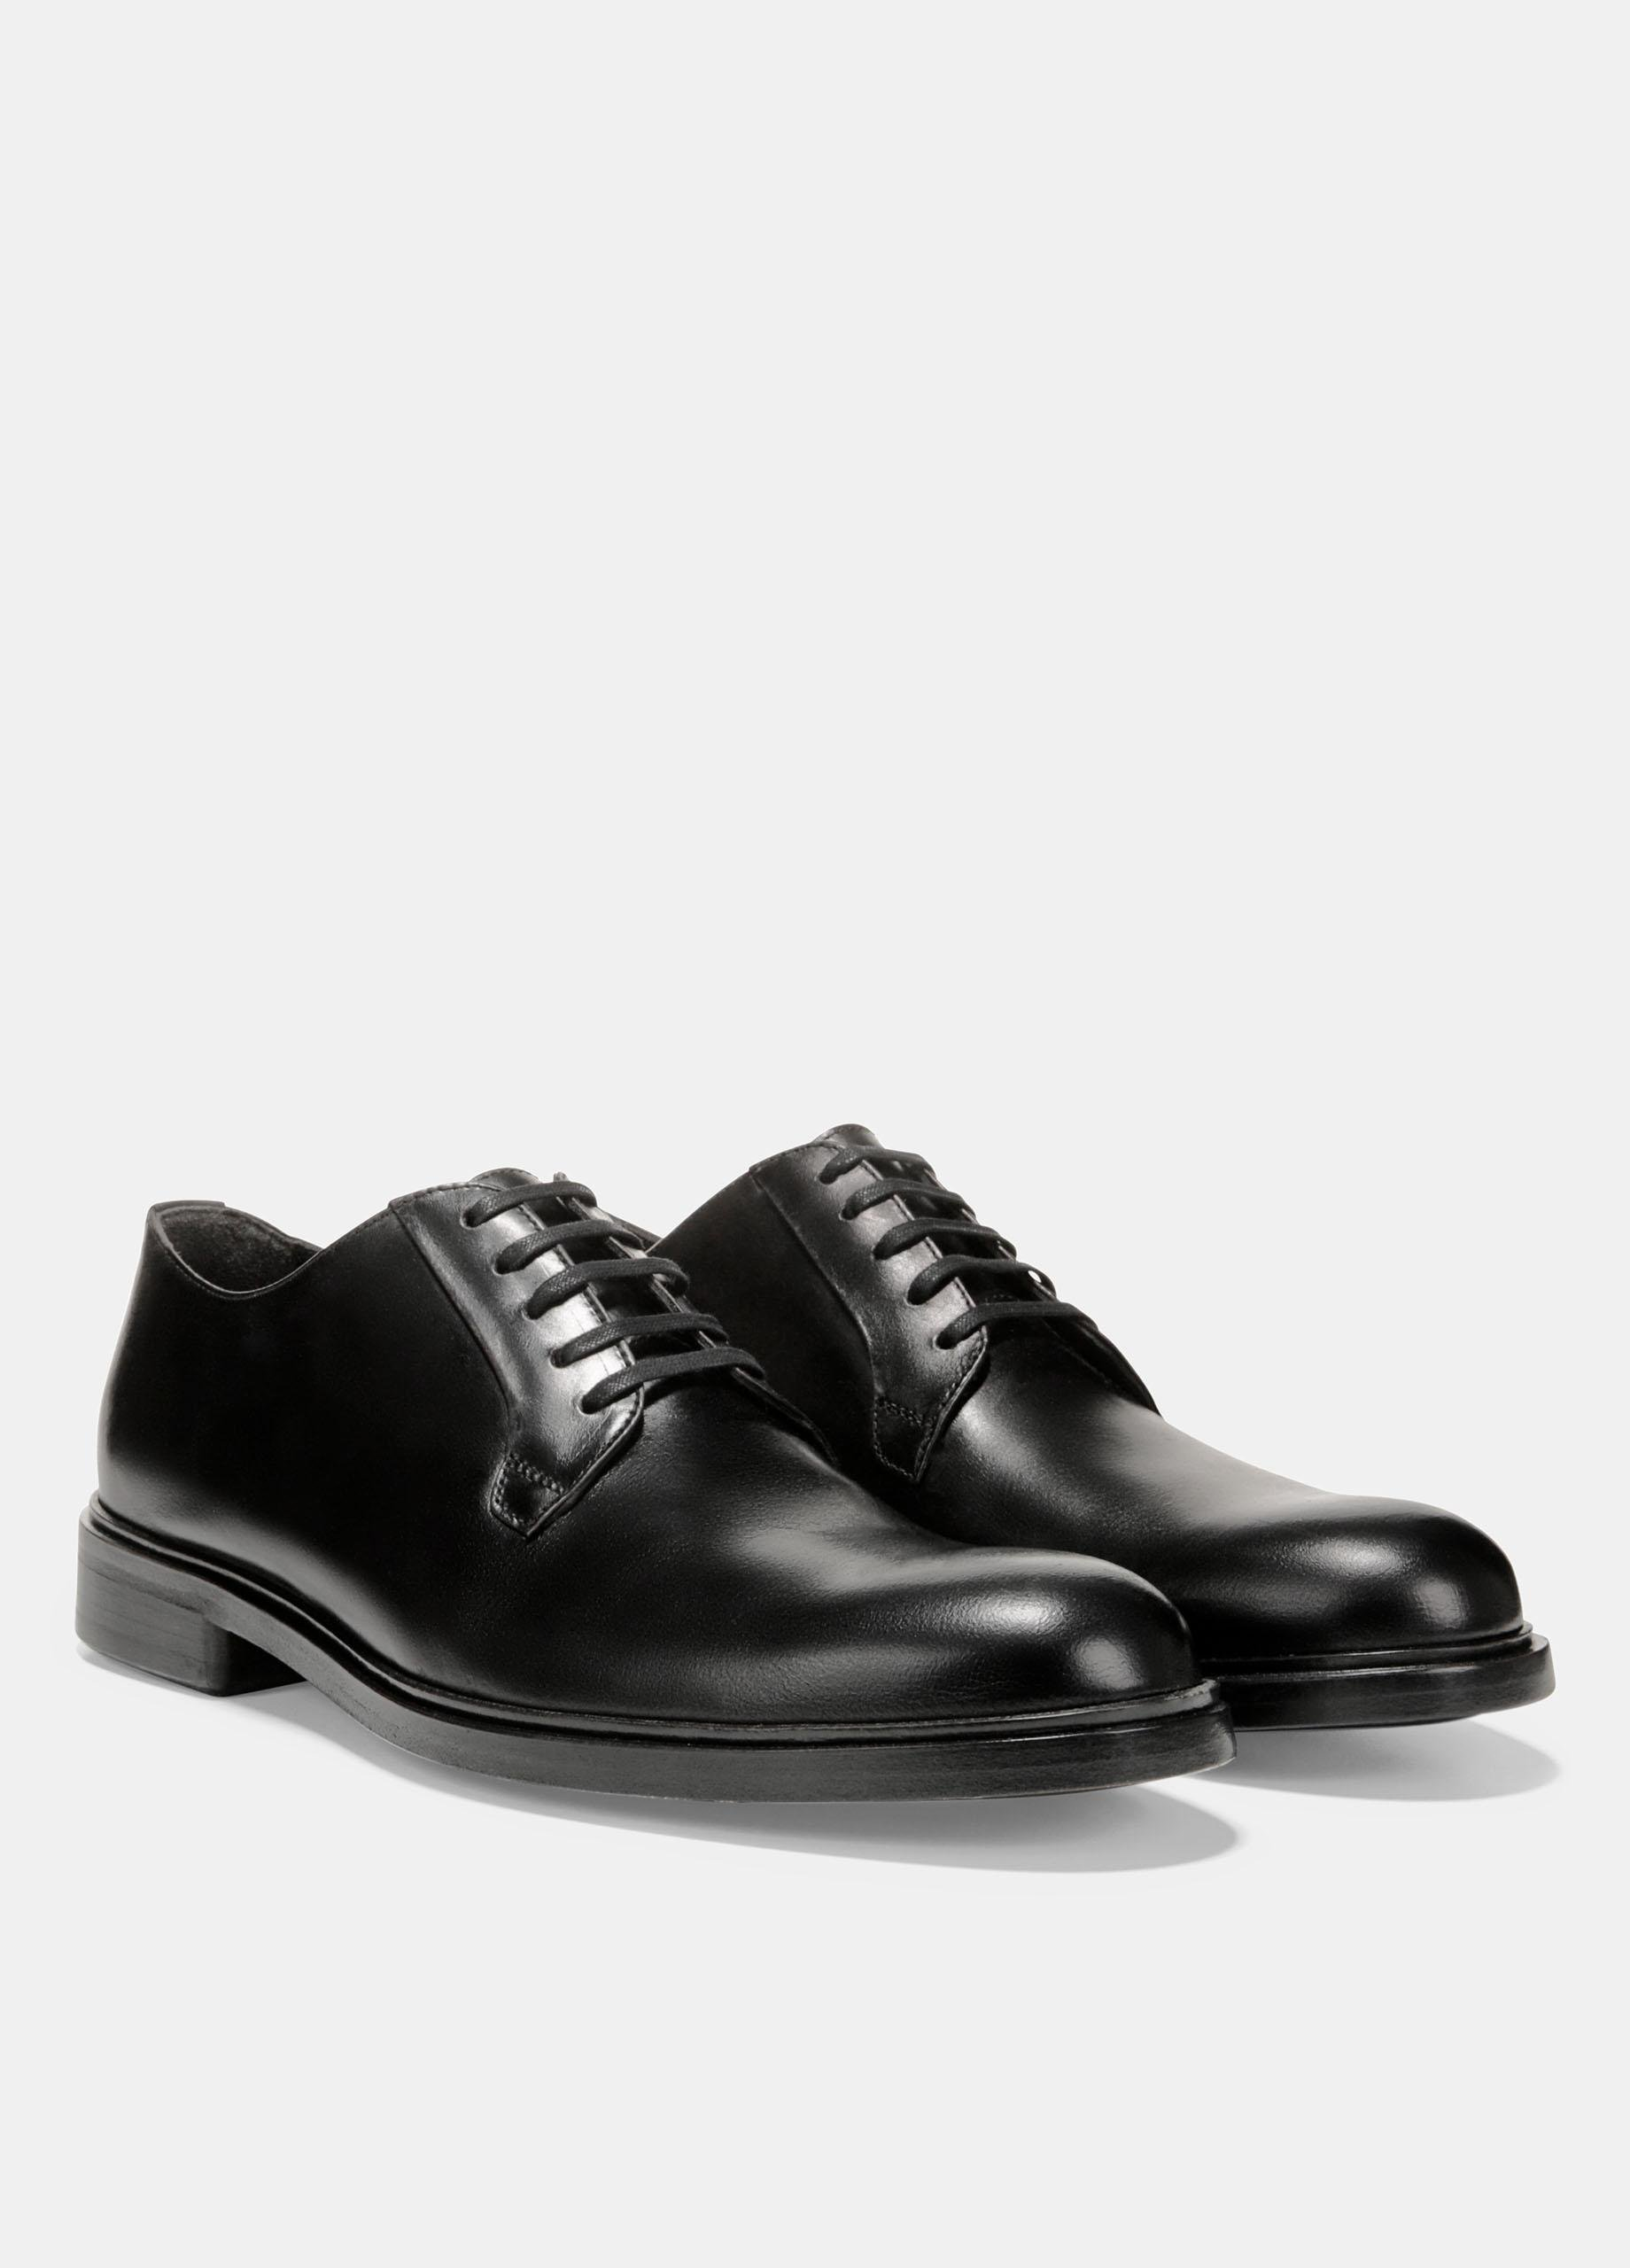 Vince Leather Boerum Shoe in Black for Men